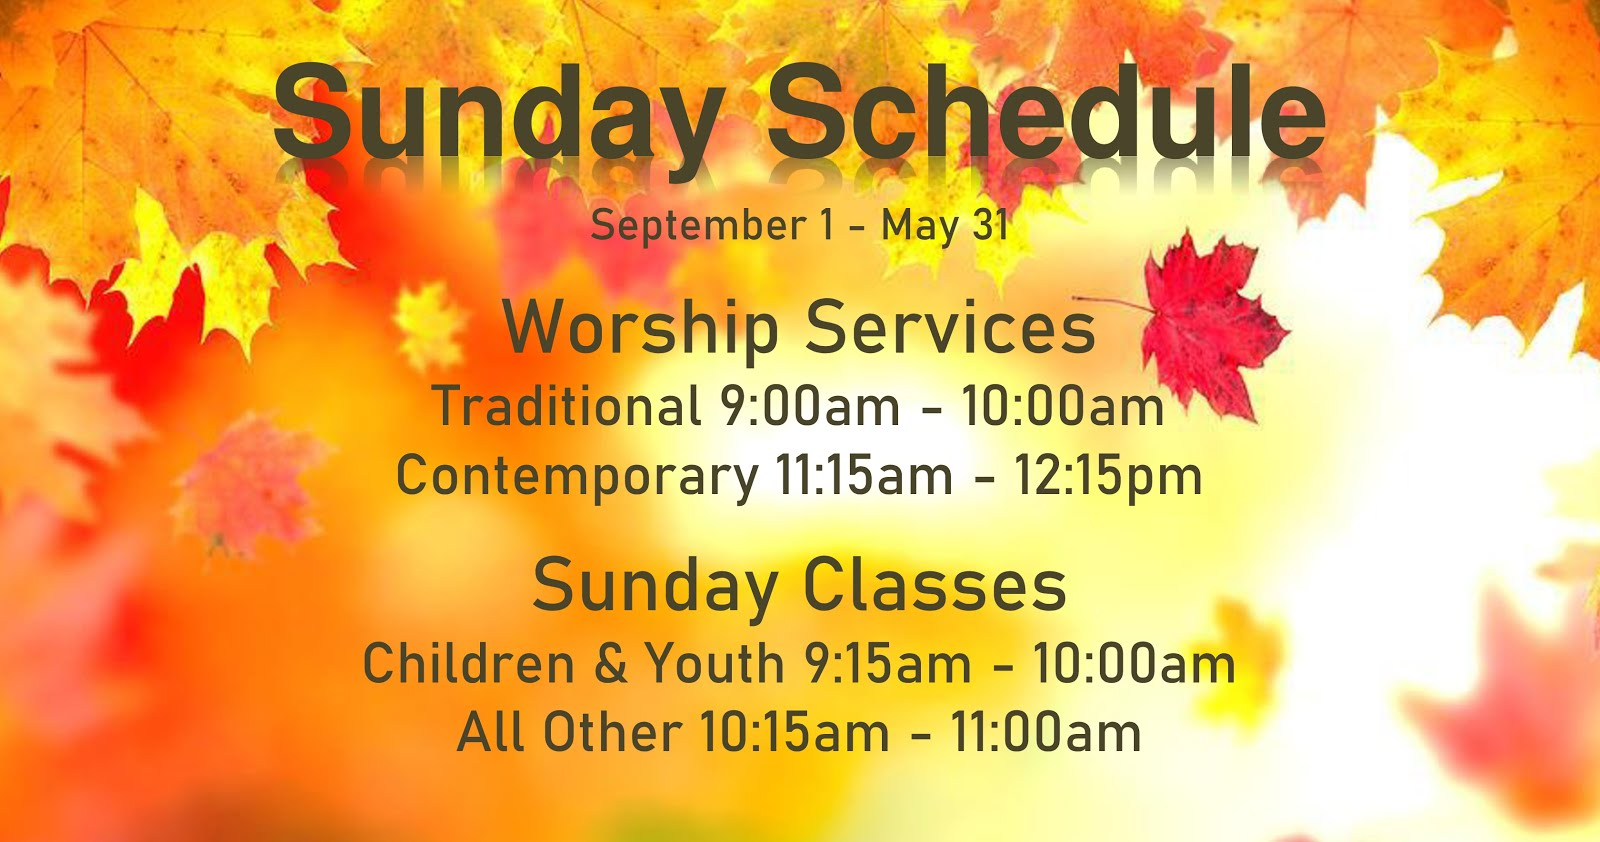 Sunday Schedule